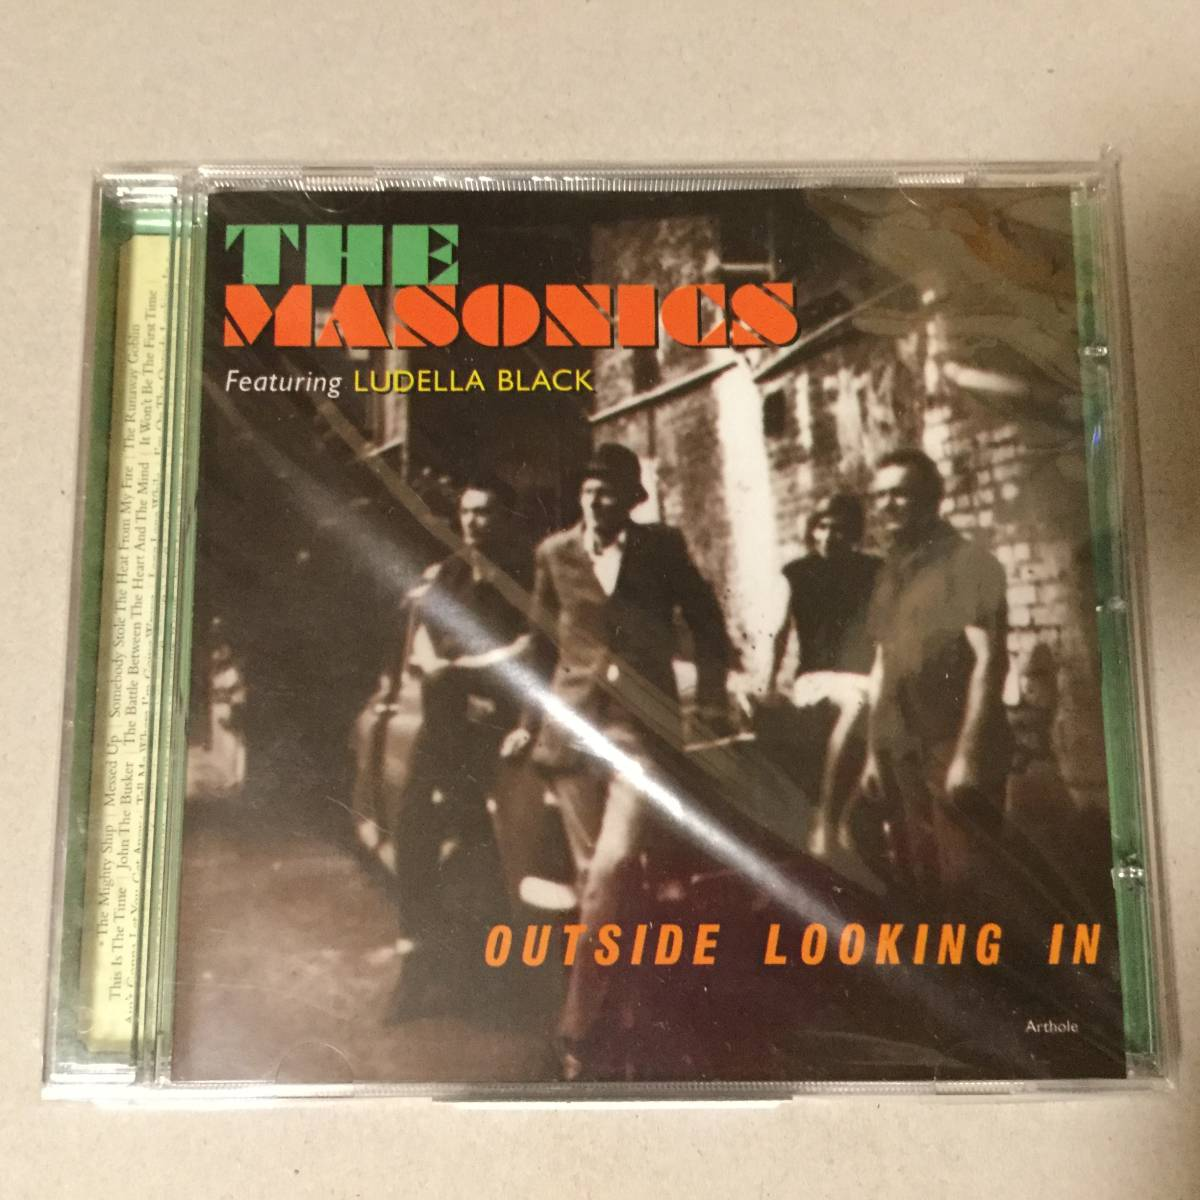 The Masonics CD Milkshakes Headcoats Headcoatees Garage Punk Rock ガレージロック_画像1